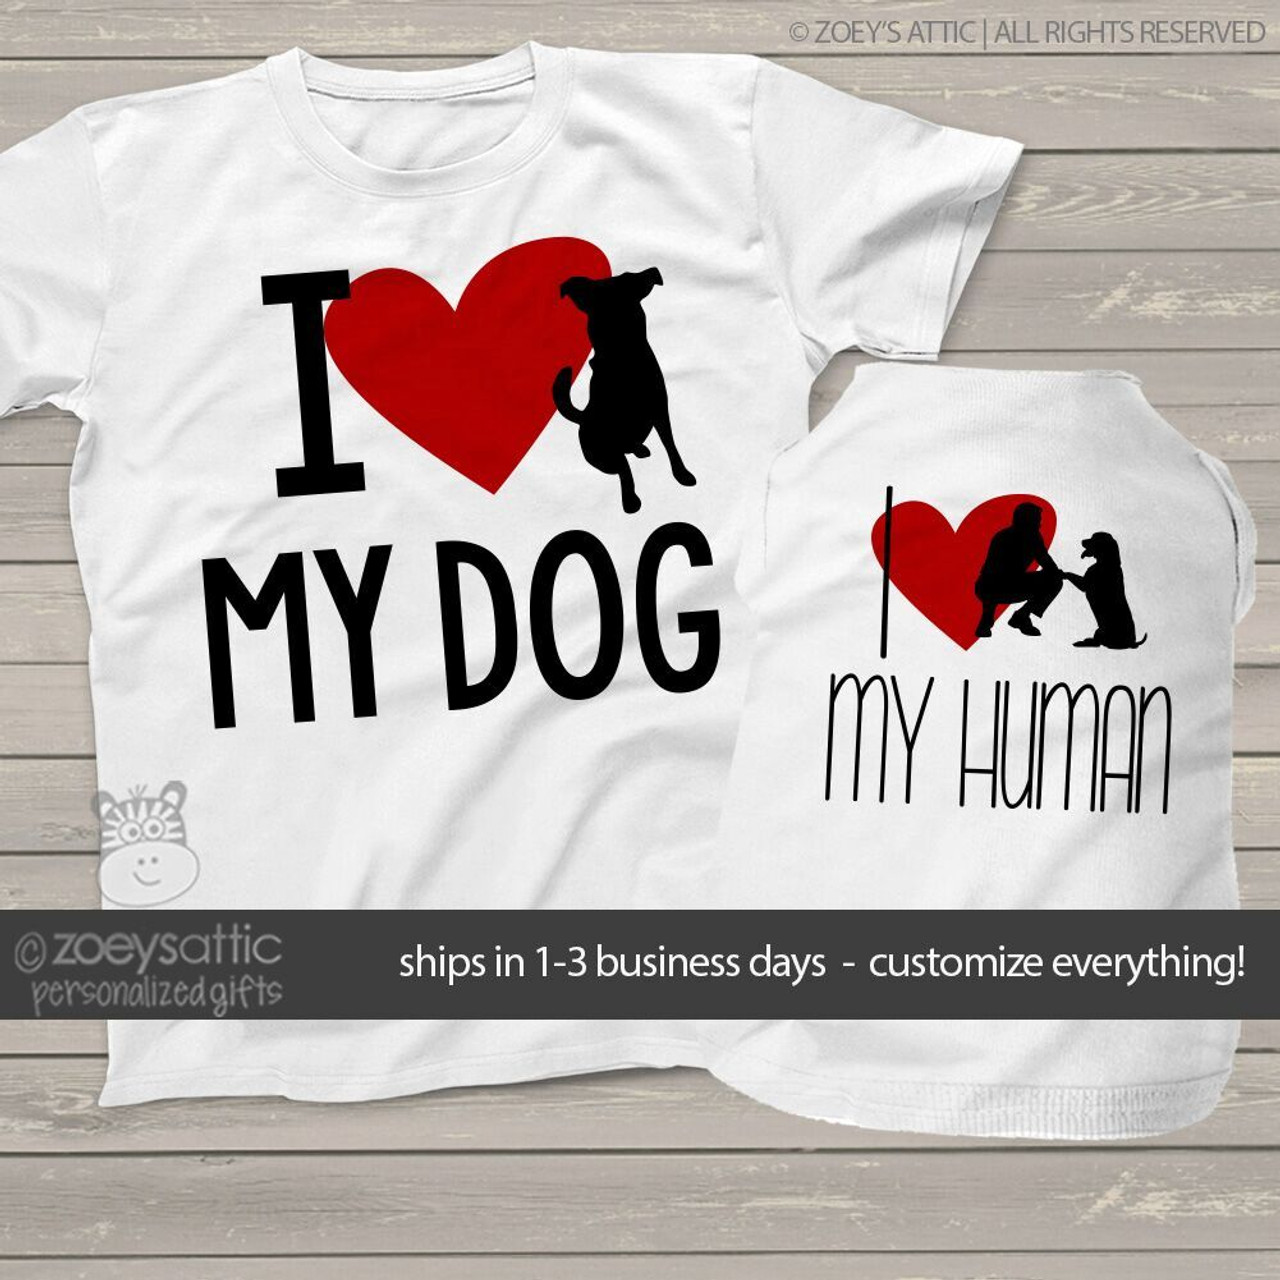 Custom Unisex Shirt Dog Shirts Love My Human And Love My Dog